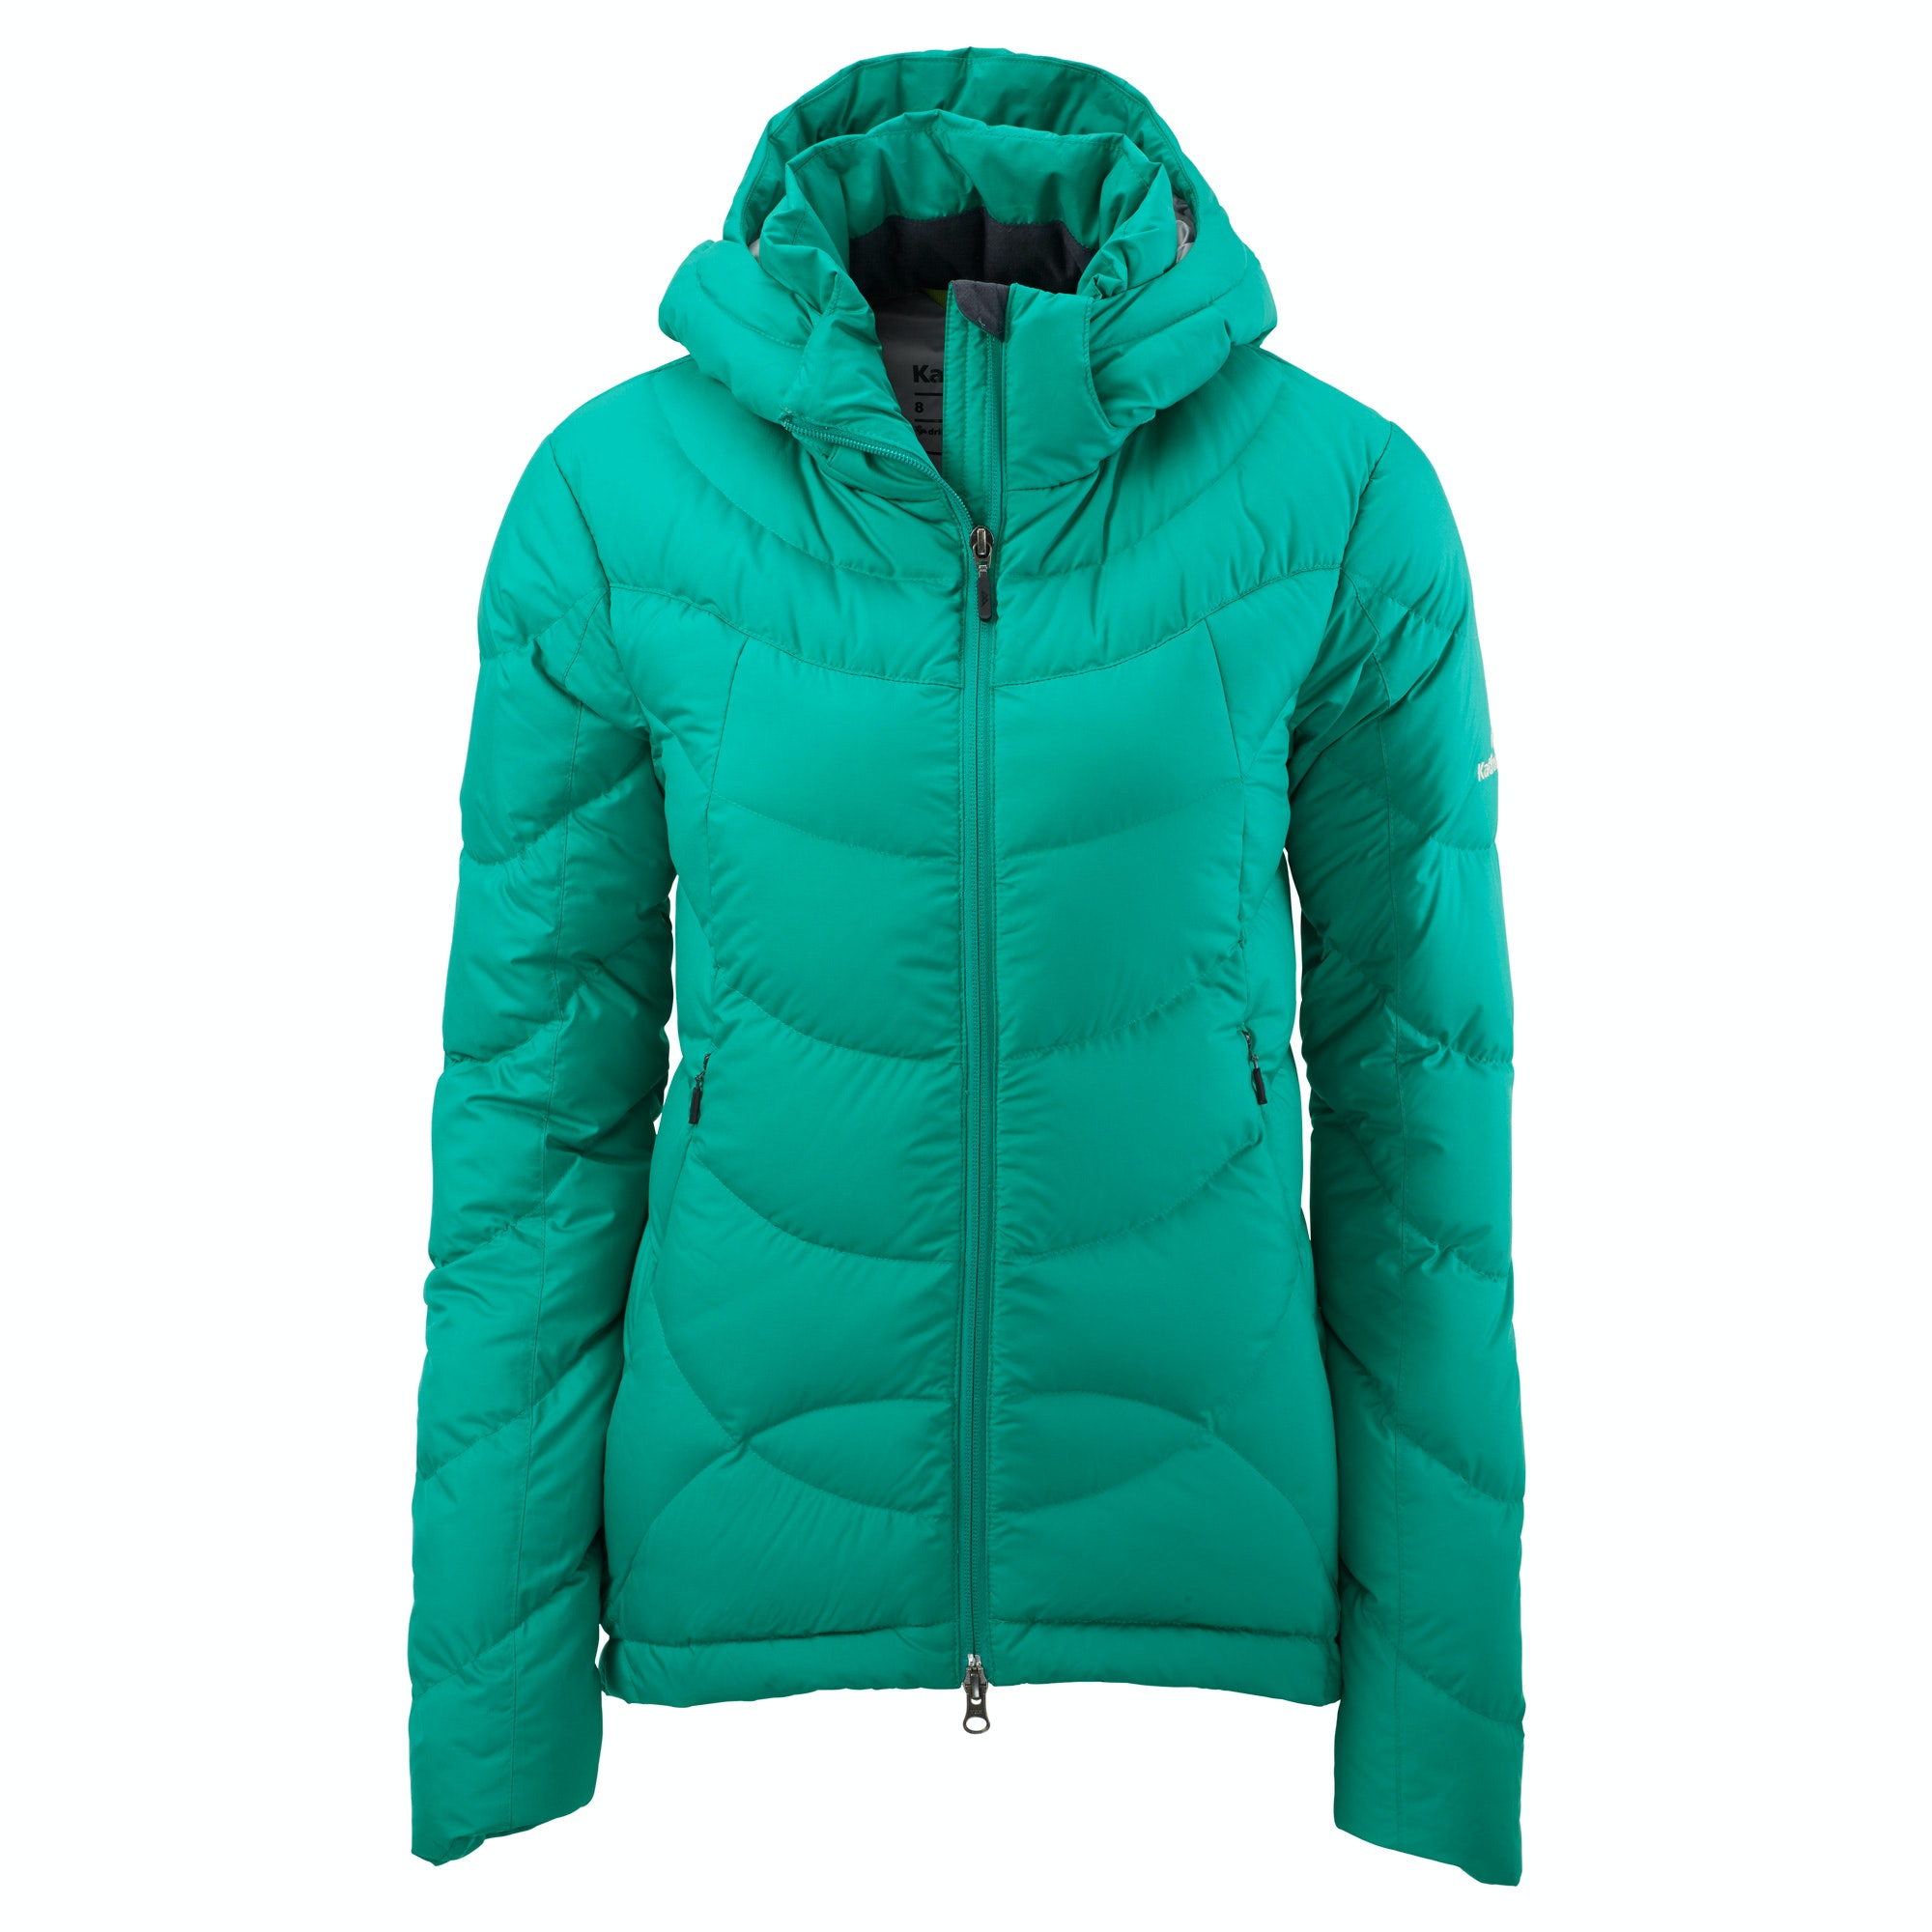 BiBOONES Spring and Autumn White Duck Down Women's Casual Collarless Ultralight Down Jacket $ #2. Fast Sister Women's Stylish Goose Down Jackets Down Coats Parka Fox Fur Collar ¡­ ouxiuli Women's Winter Warm Down Jacket Belted Zipper Padded Hooded Coat $ #